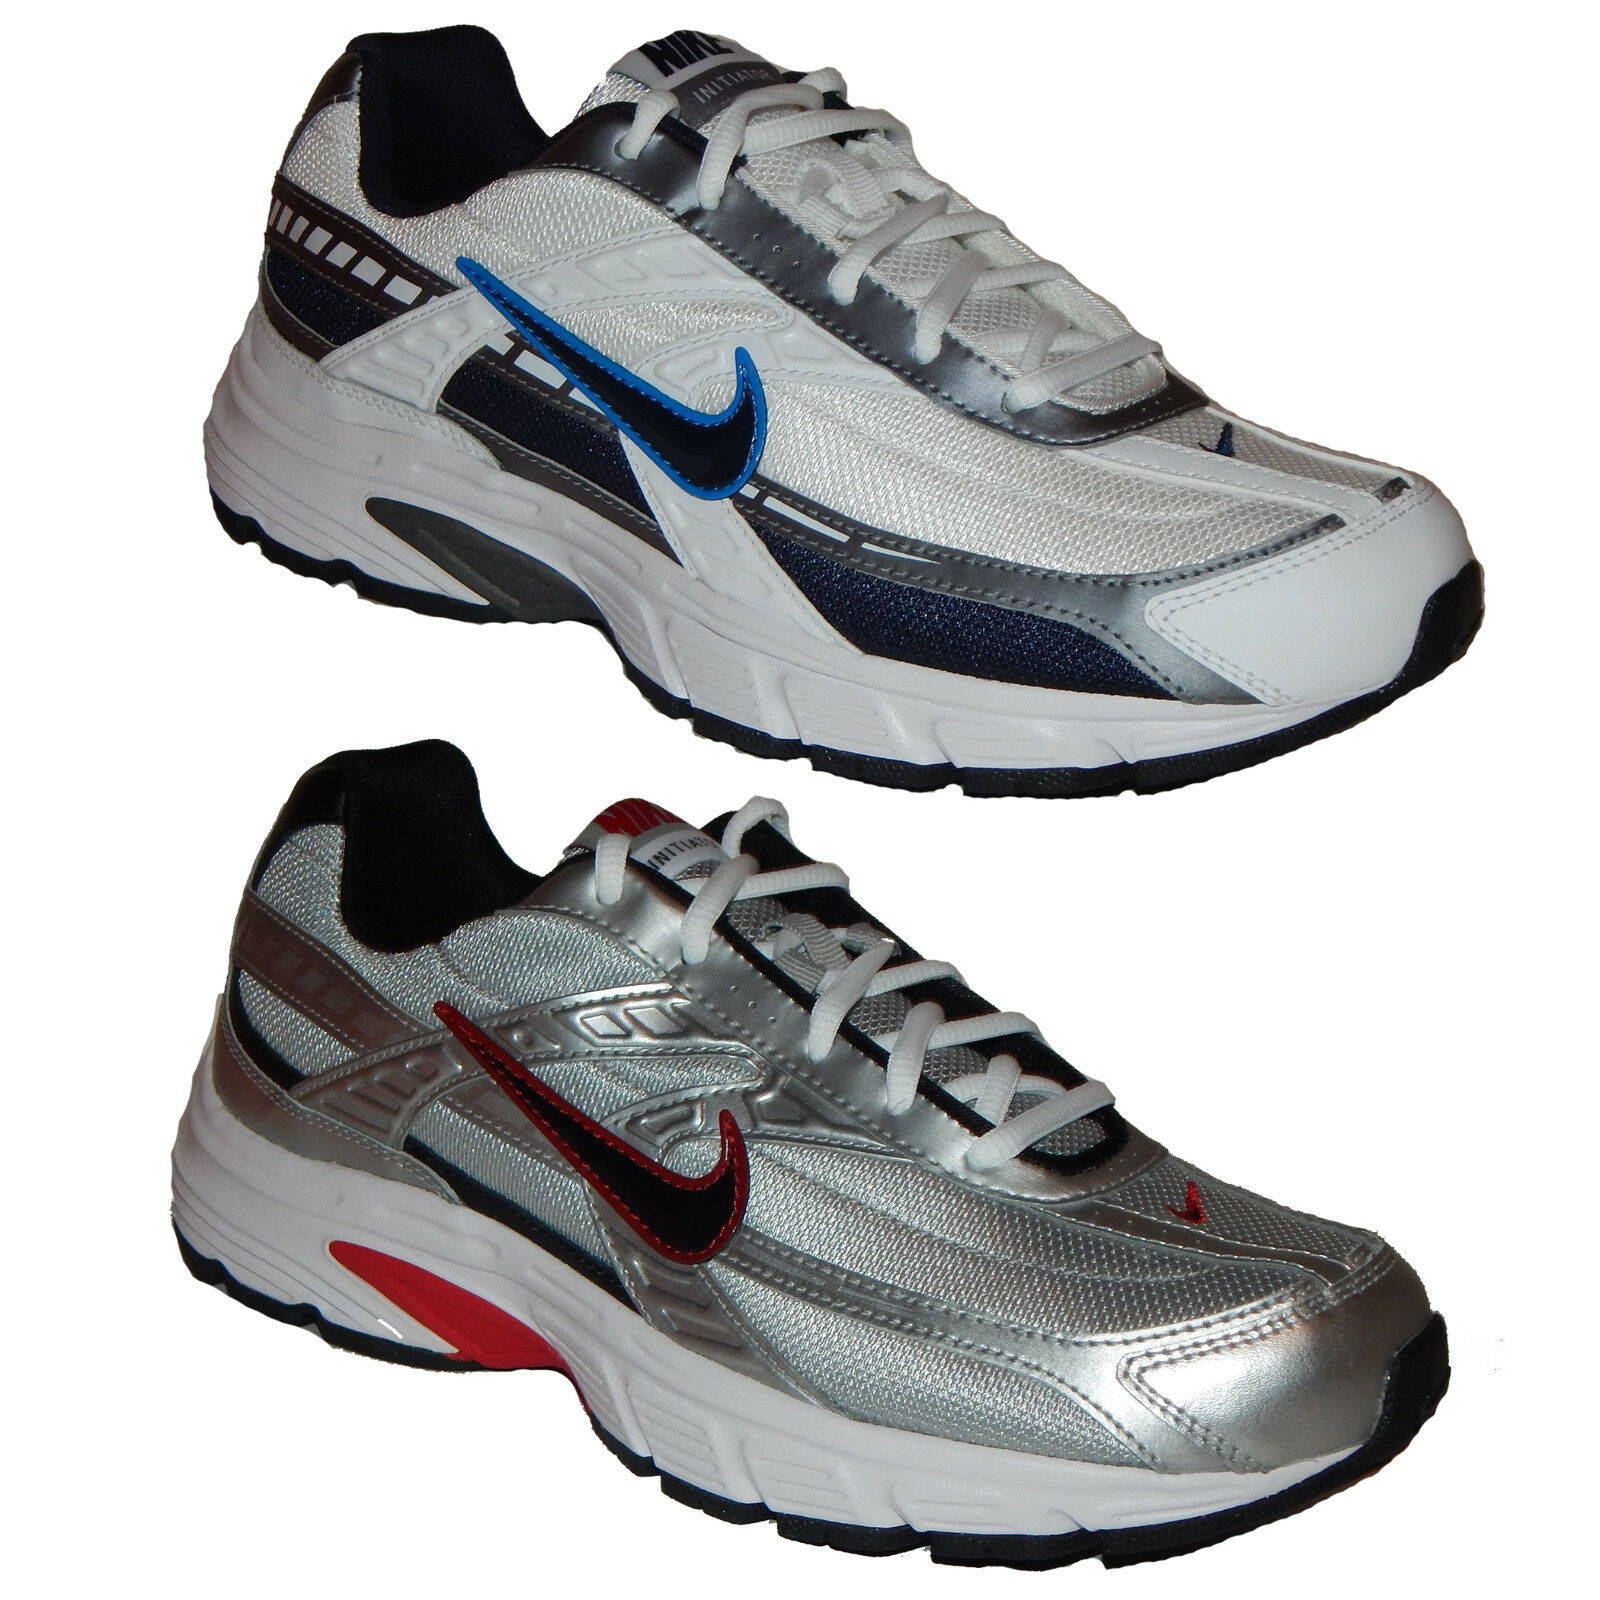 Nike Initiator Men's Running Shoe NEW Sneaker 2 Colors Most Sizes 2 Widths